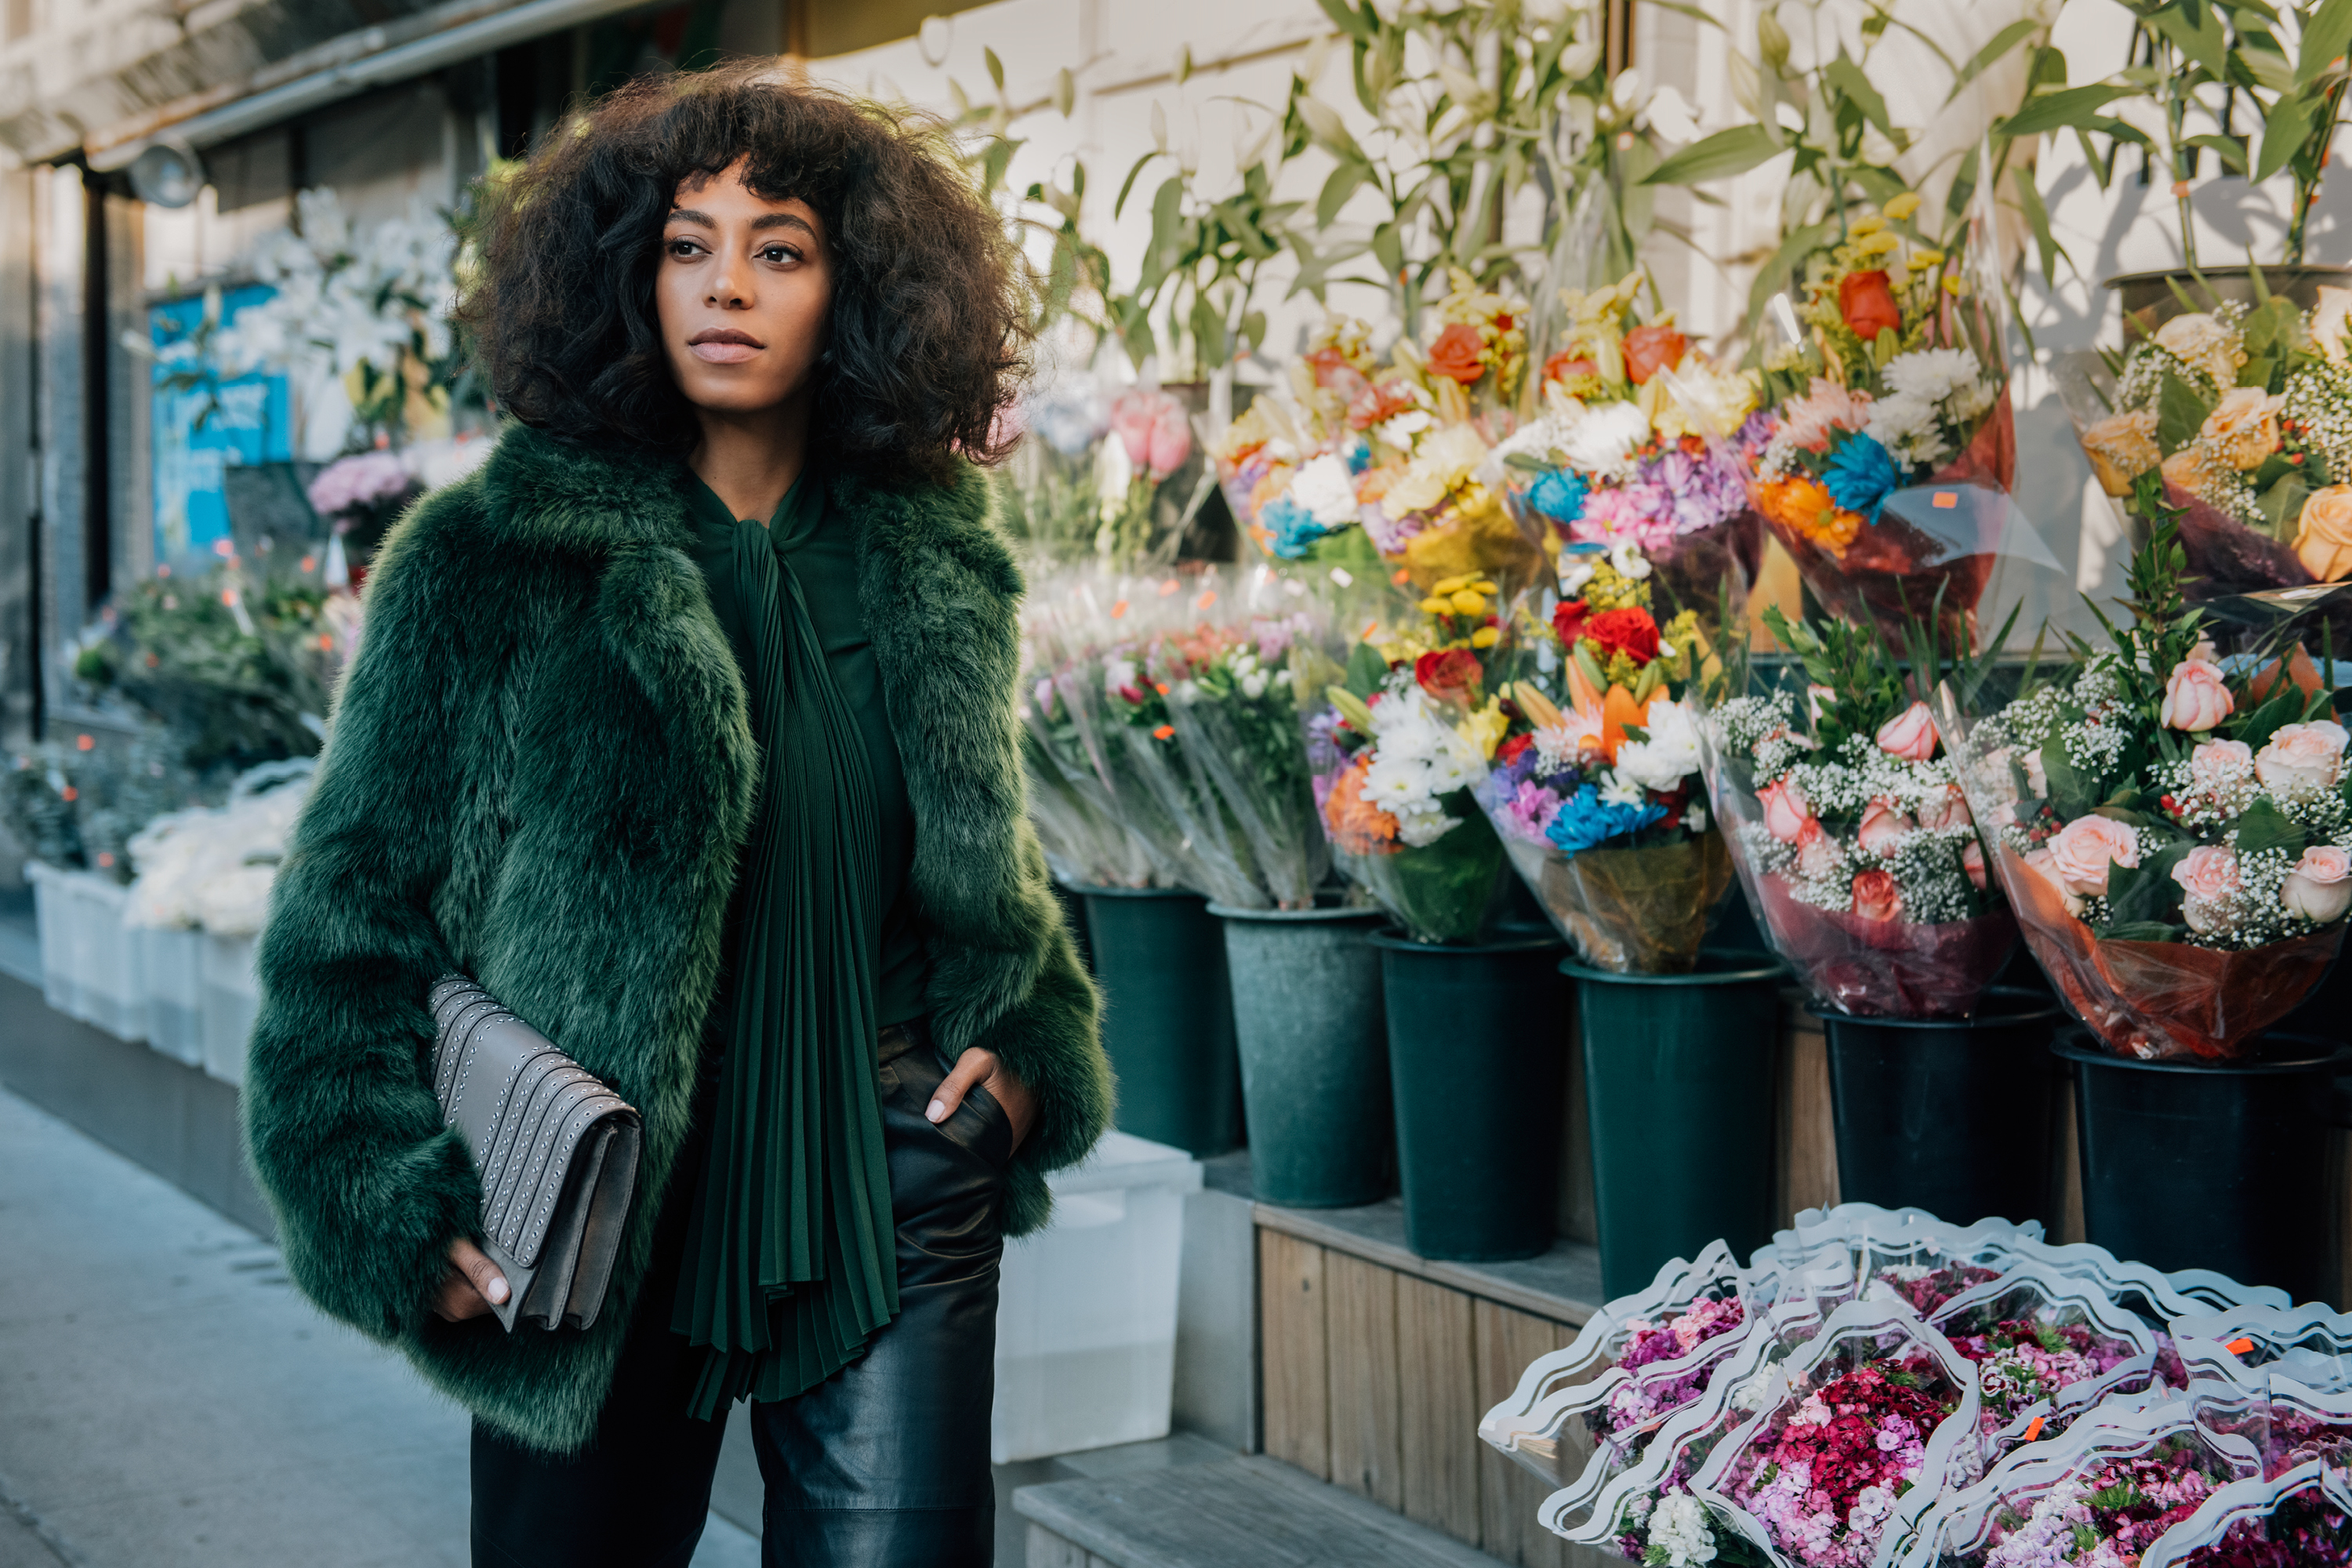 e2205208fe1c Solange Knowles and Nina Adgal Star in Michael Kors' New Handbag Campaign